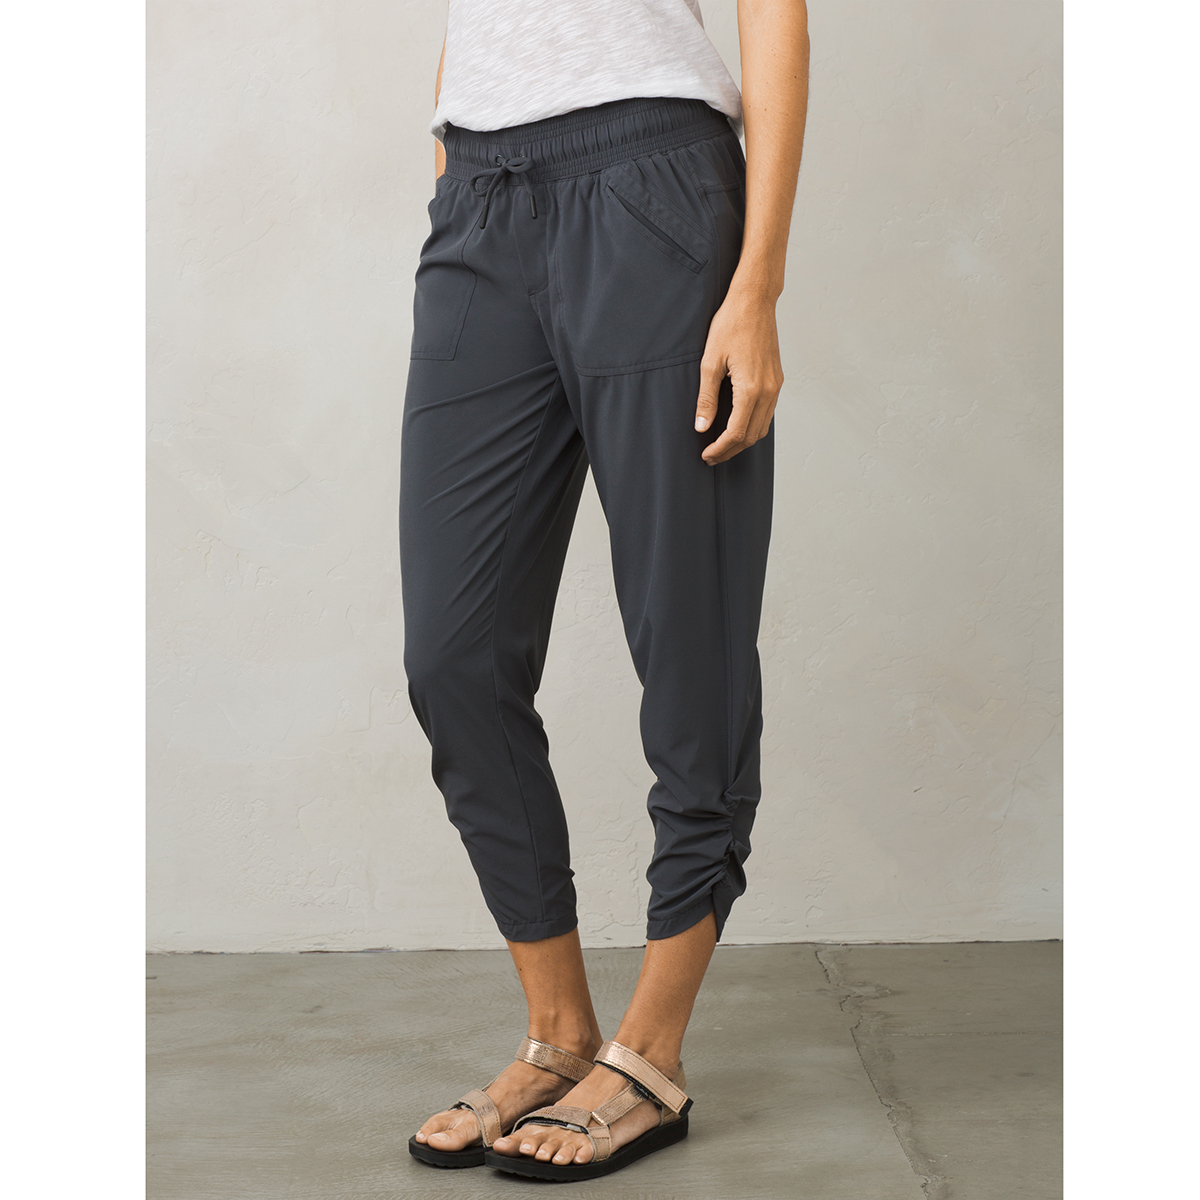 ... PRANA Womenu0026#39;s Midtown Capri Pants - COAL- ...